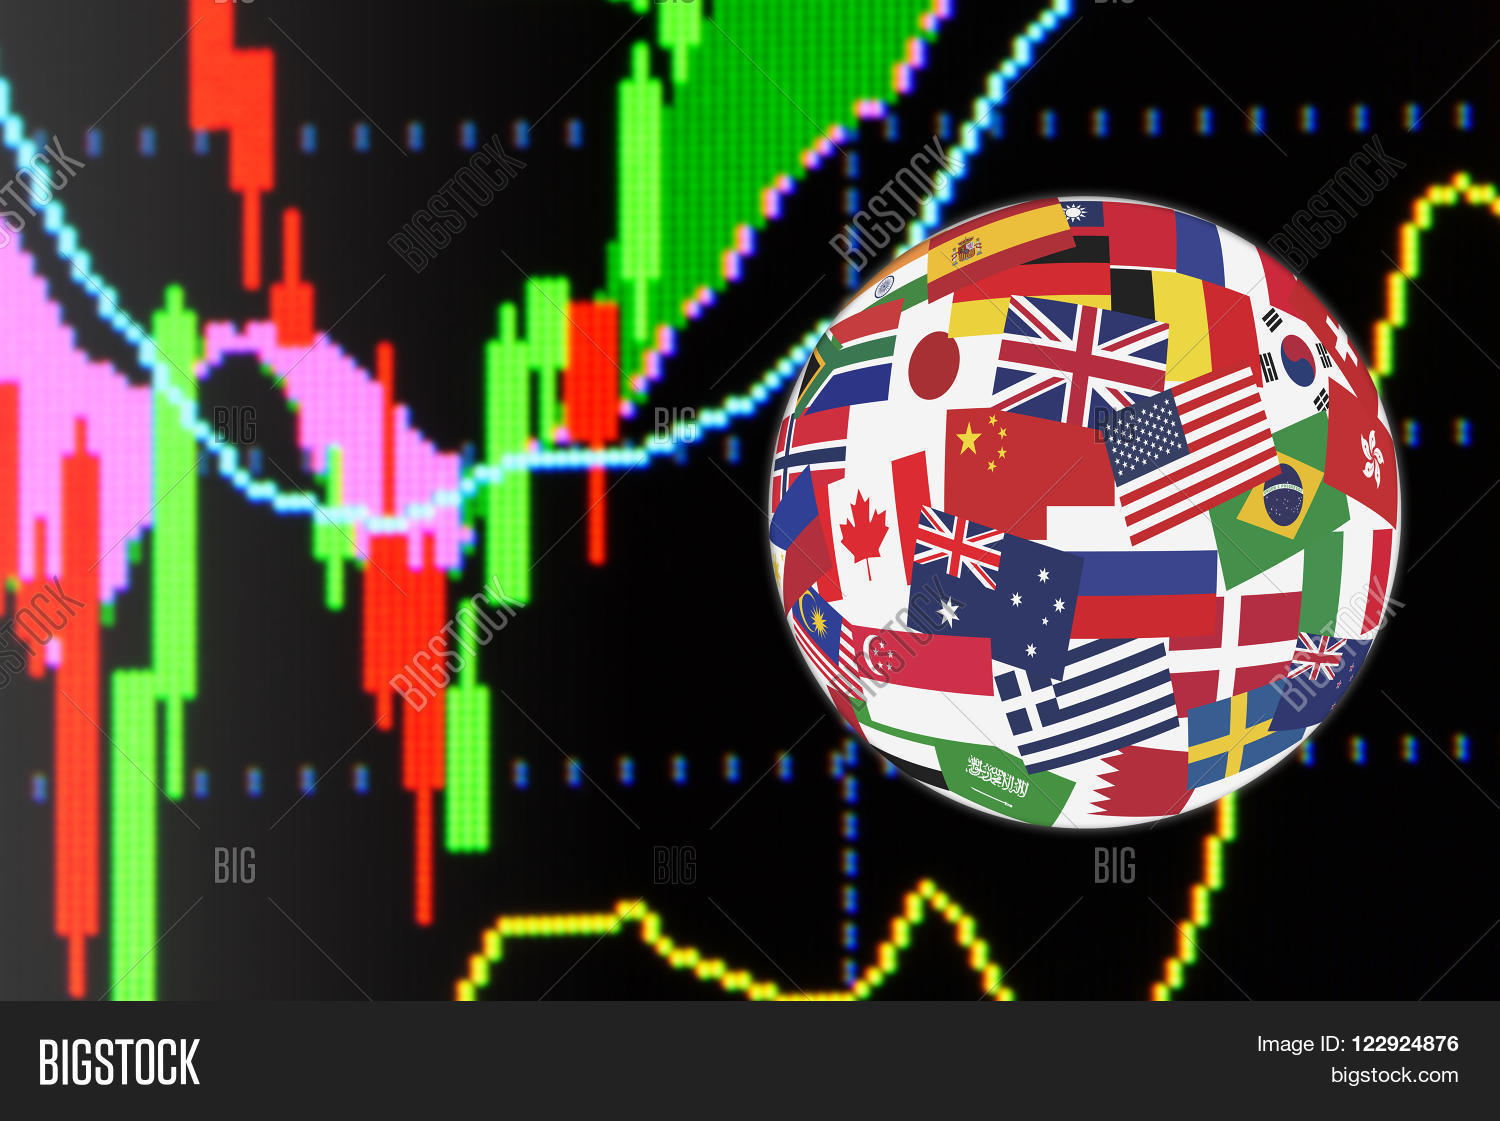 Flags Globe Over Image & Photo (Free Trial) | Bigstock